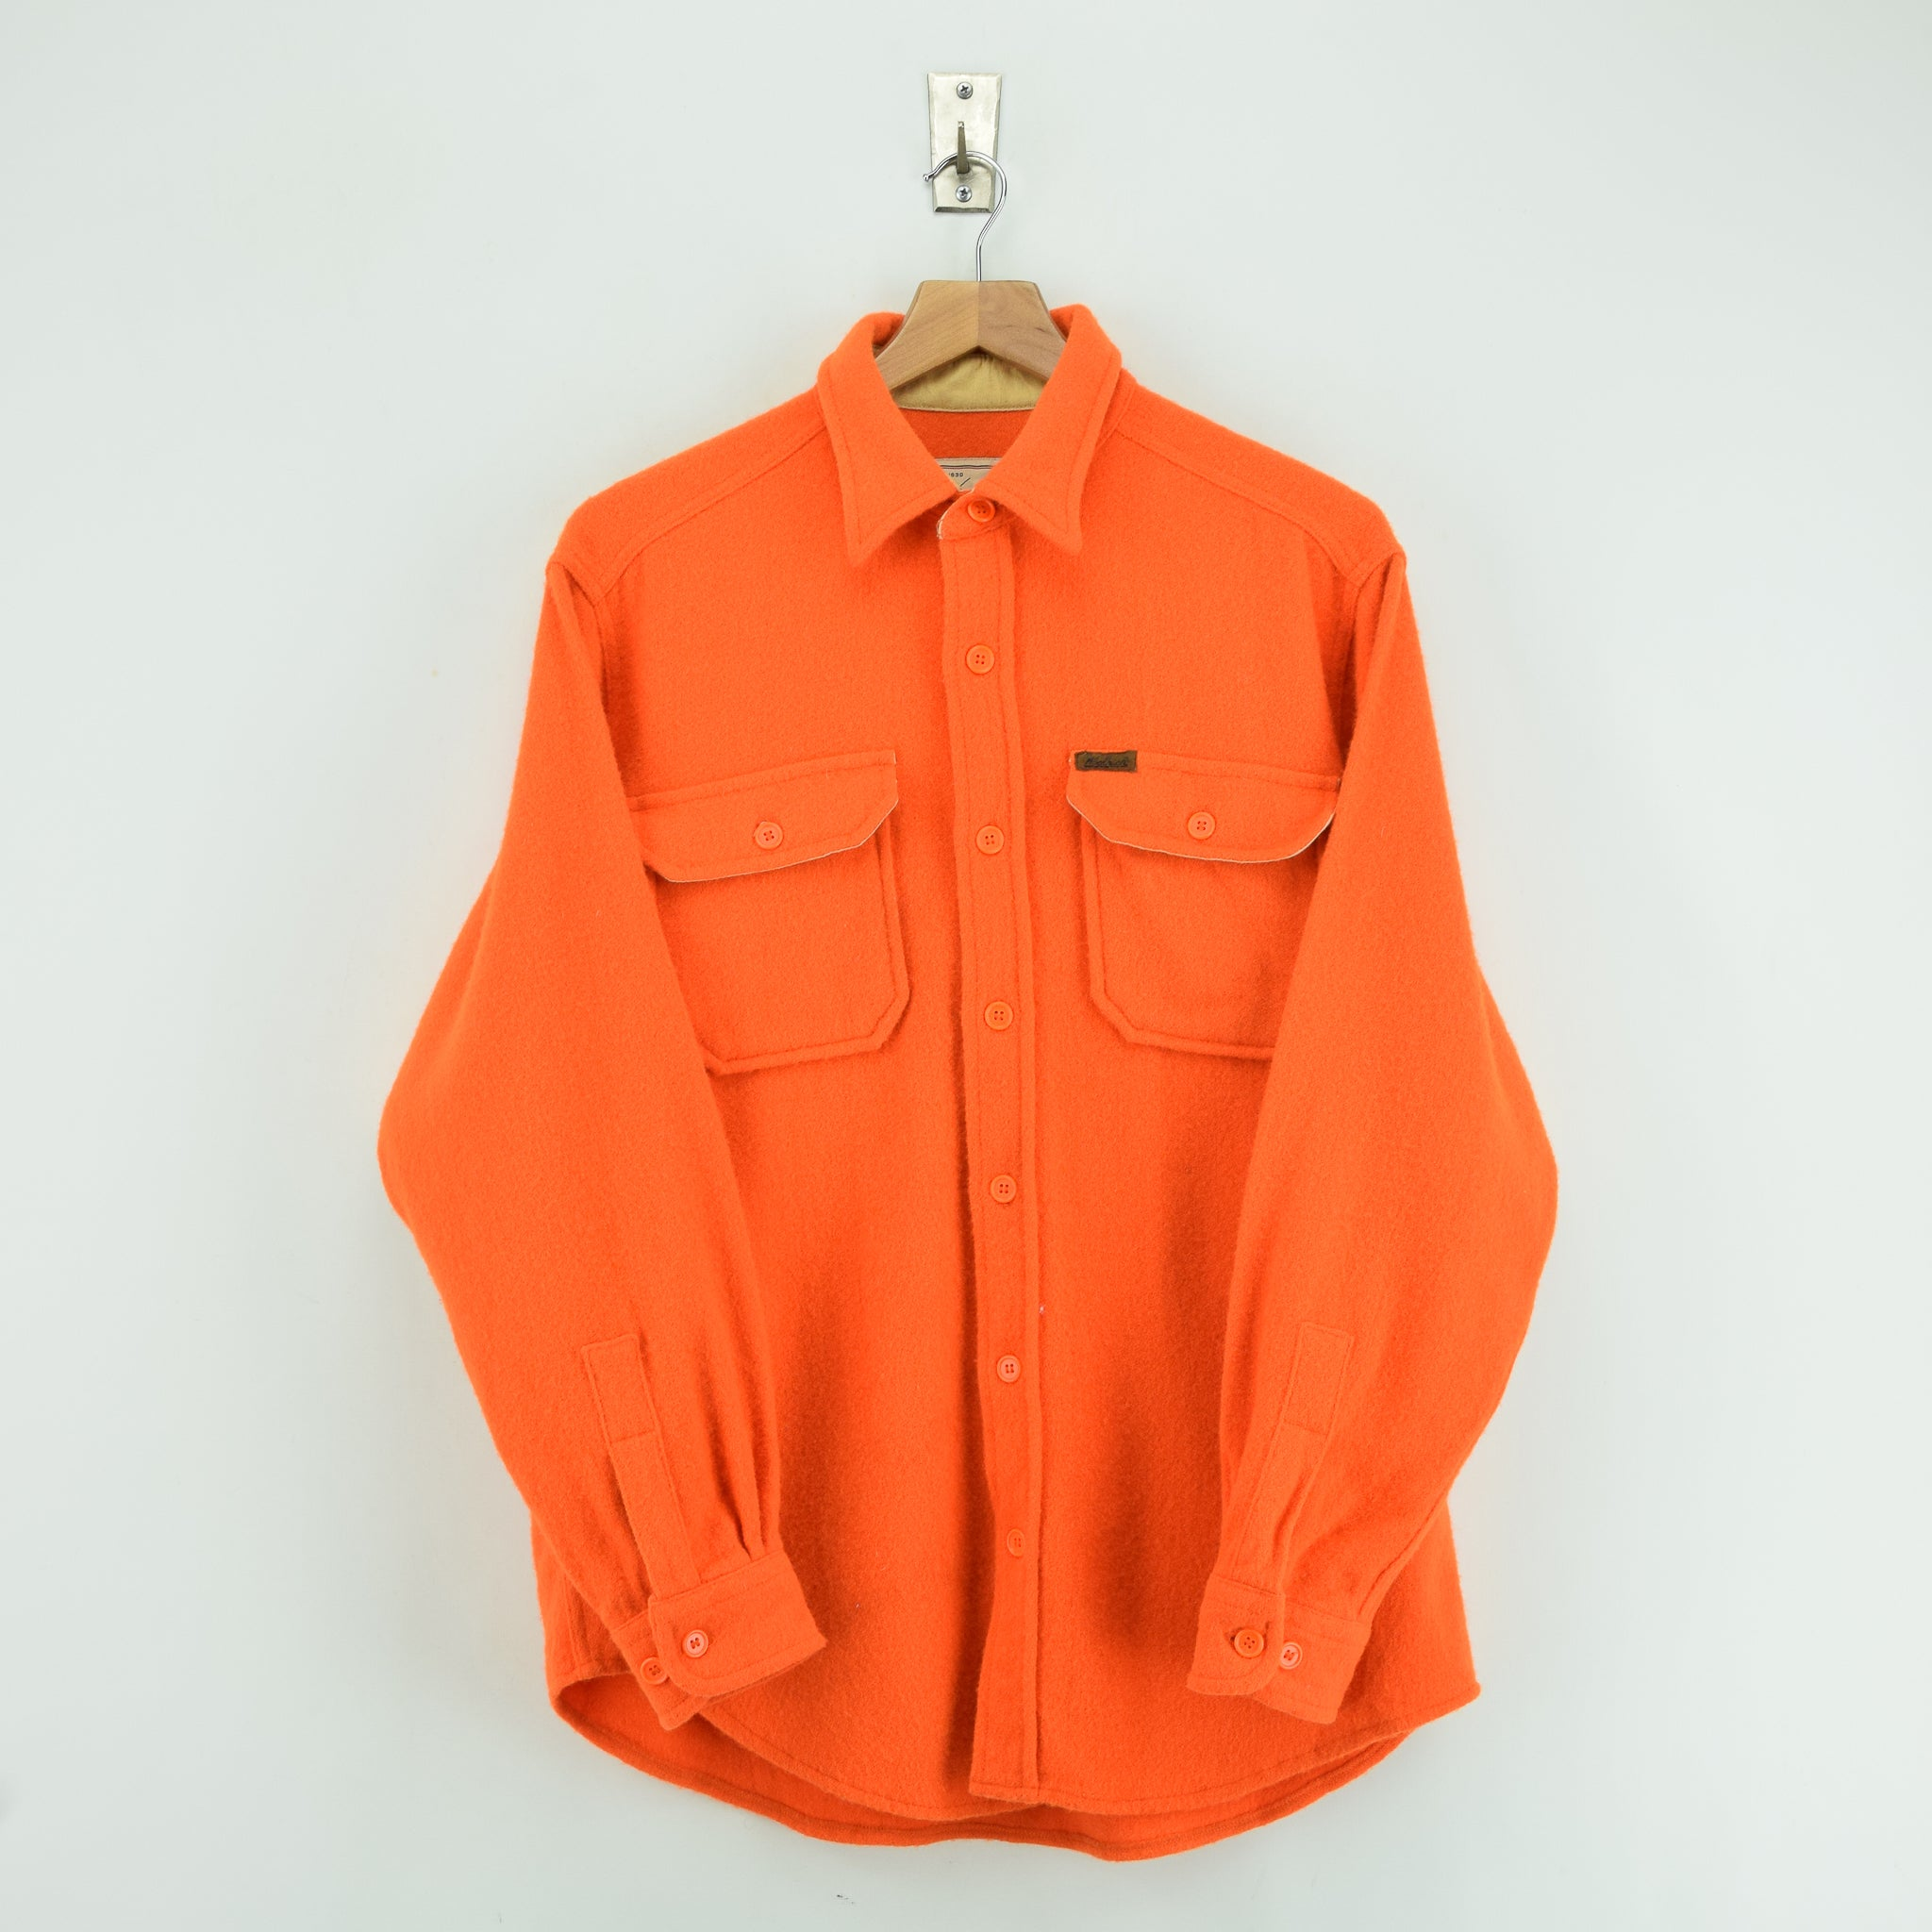 Vintage Woolrich Bright Orange Brushed Wool CPO Style Hunting Shirt Jacket M / L front